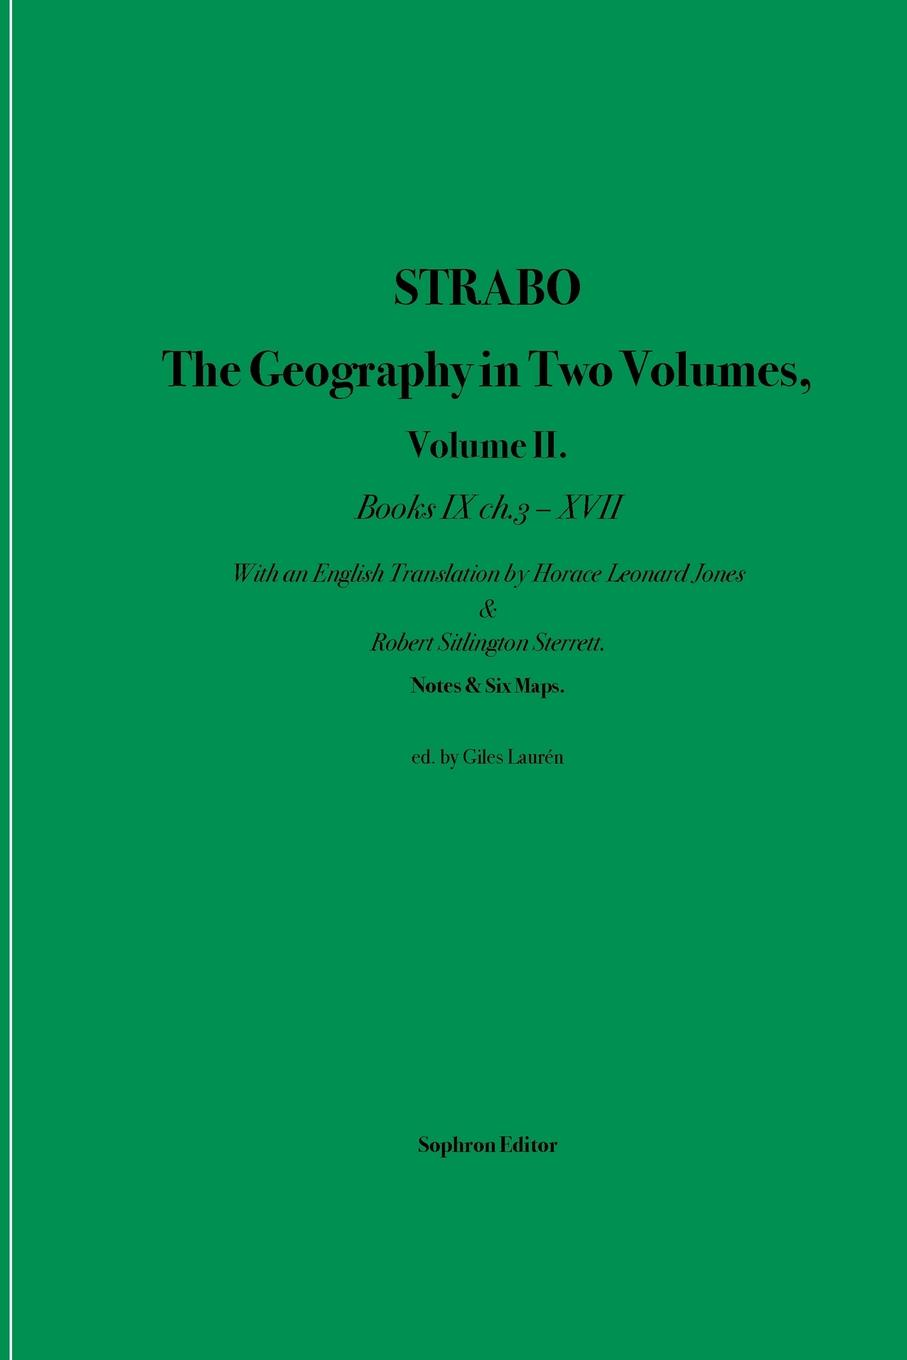 Strabo, Horace Leonard Jones Strabo The Geography in Two Volumes. Volume II. Books IX ch. 3 - XVII gon volume 3